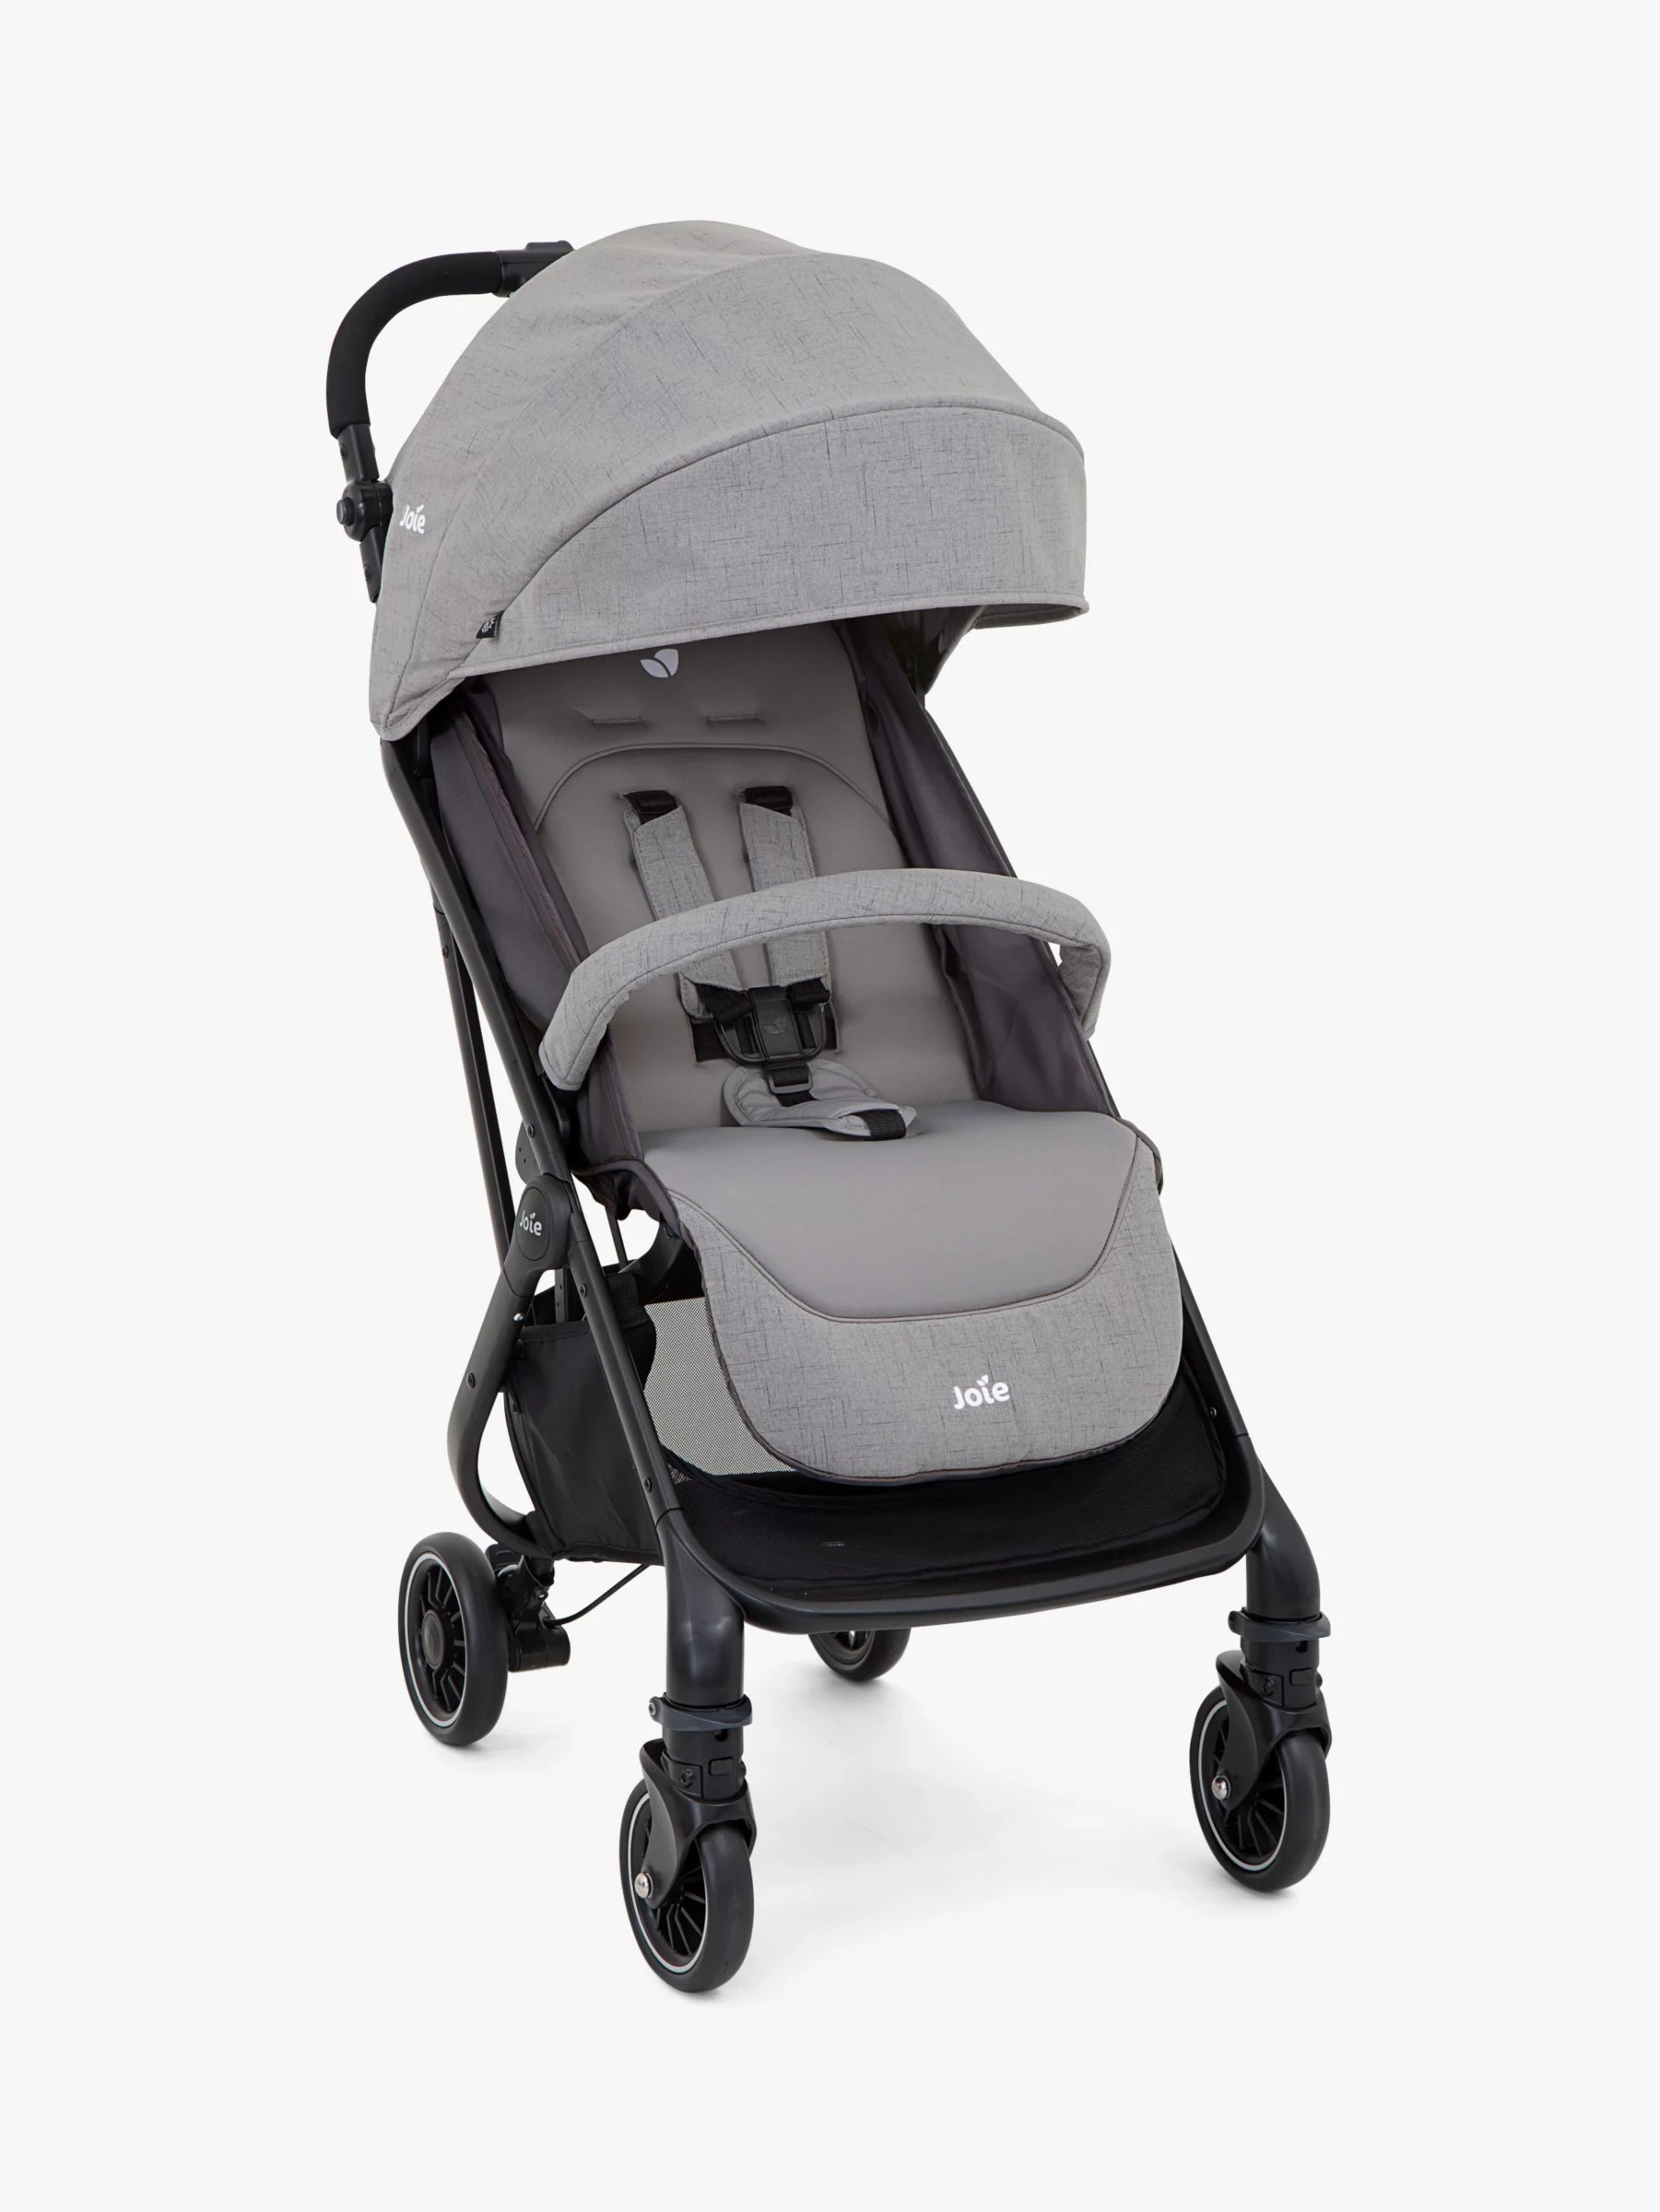 Best Knee Stroller Joie Tourist Stroller Grey Flannel